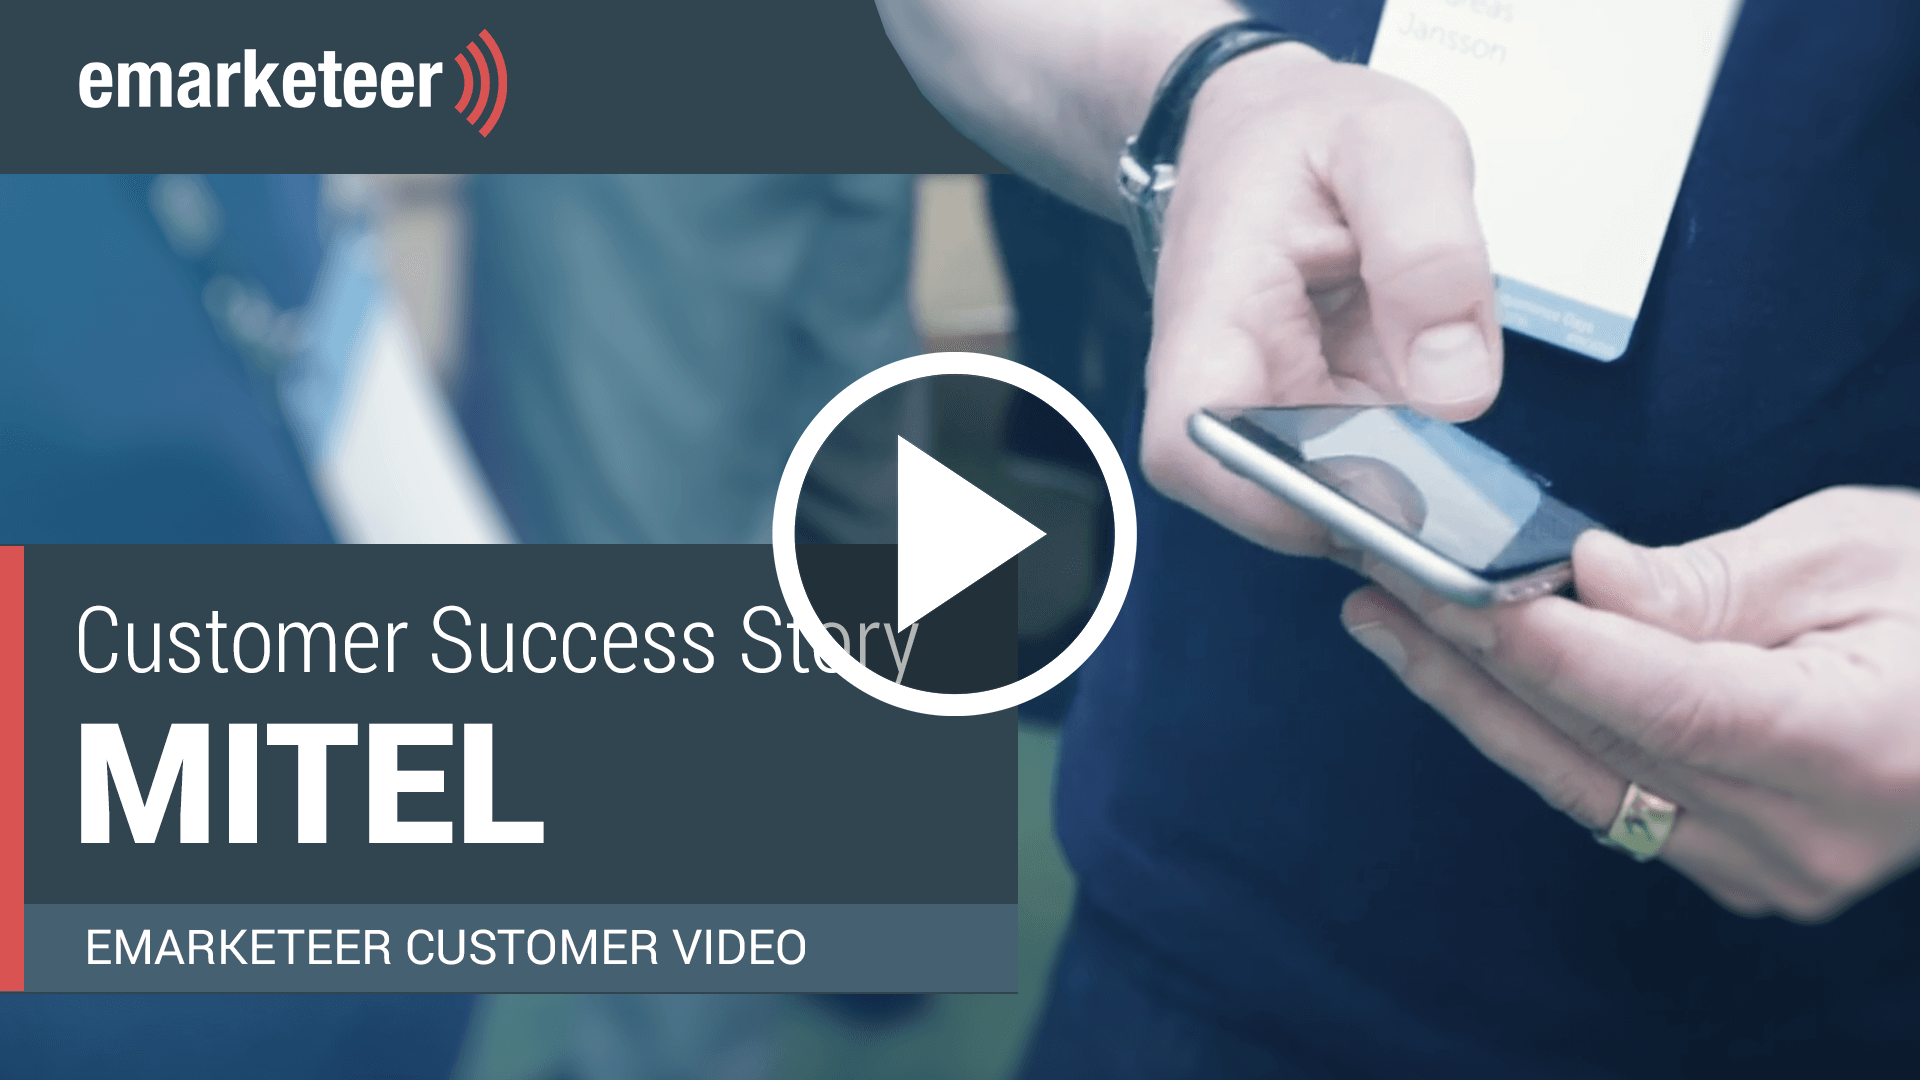 Mitel used a personalized app for their event